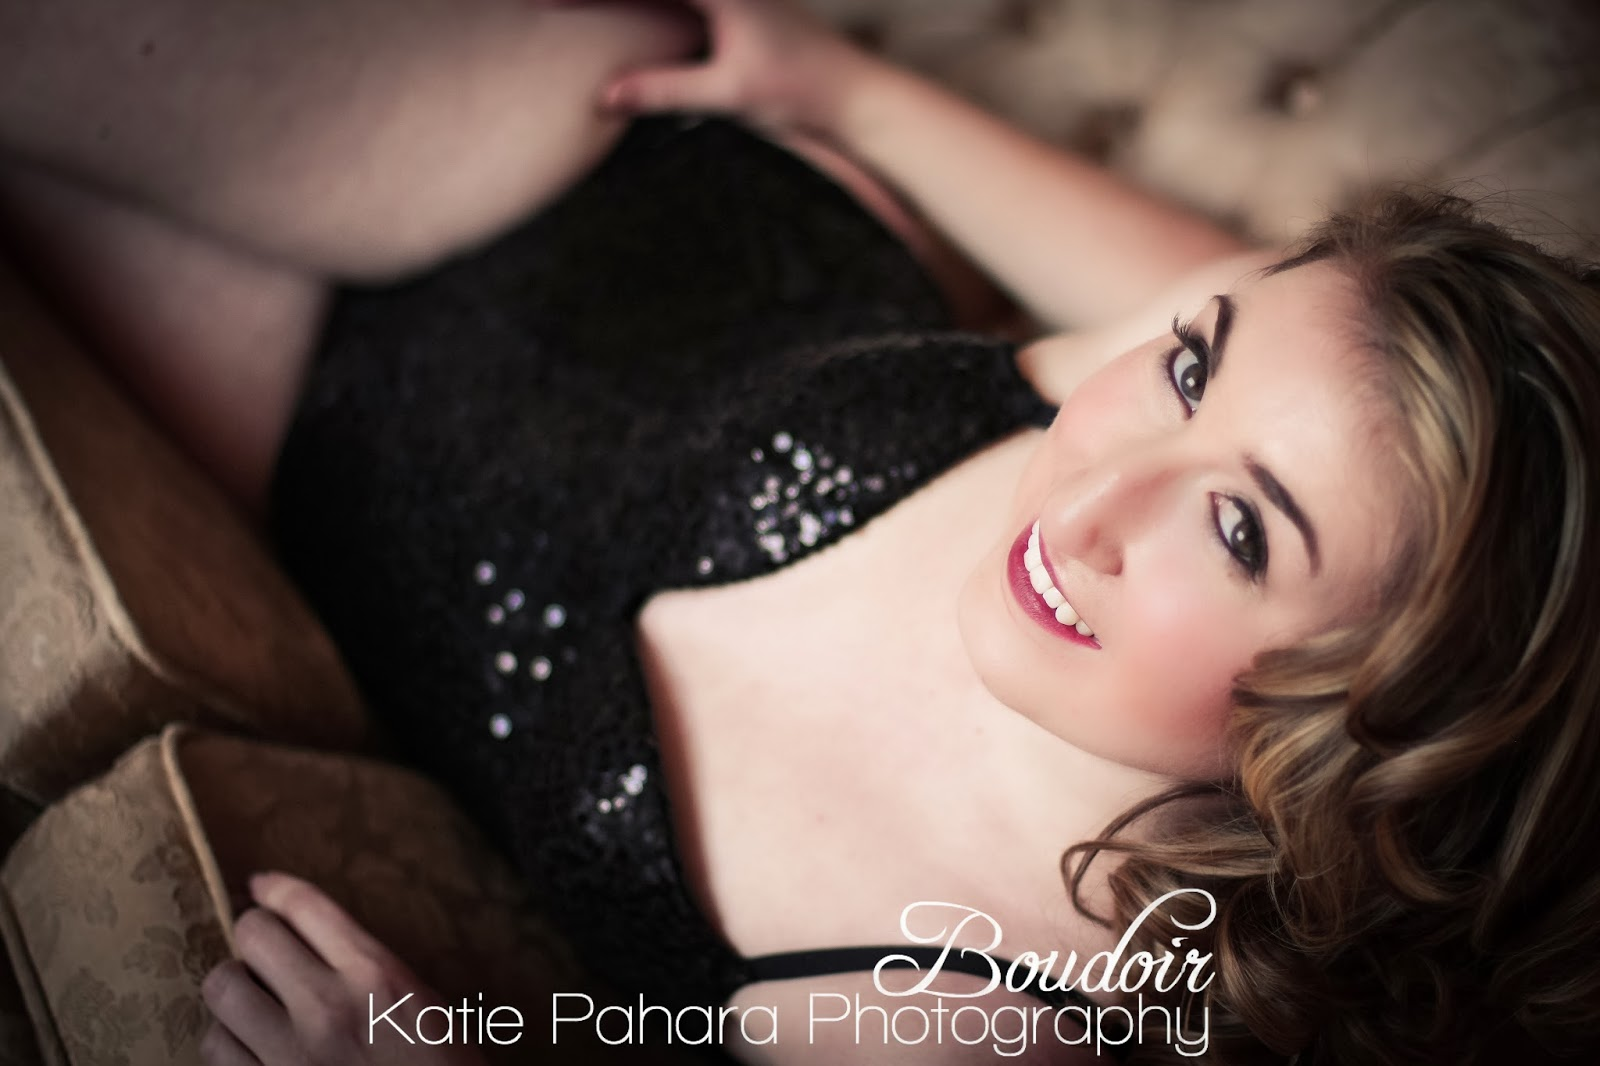 Boudoir Photography Lethbridge, AB